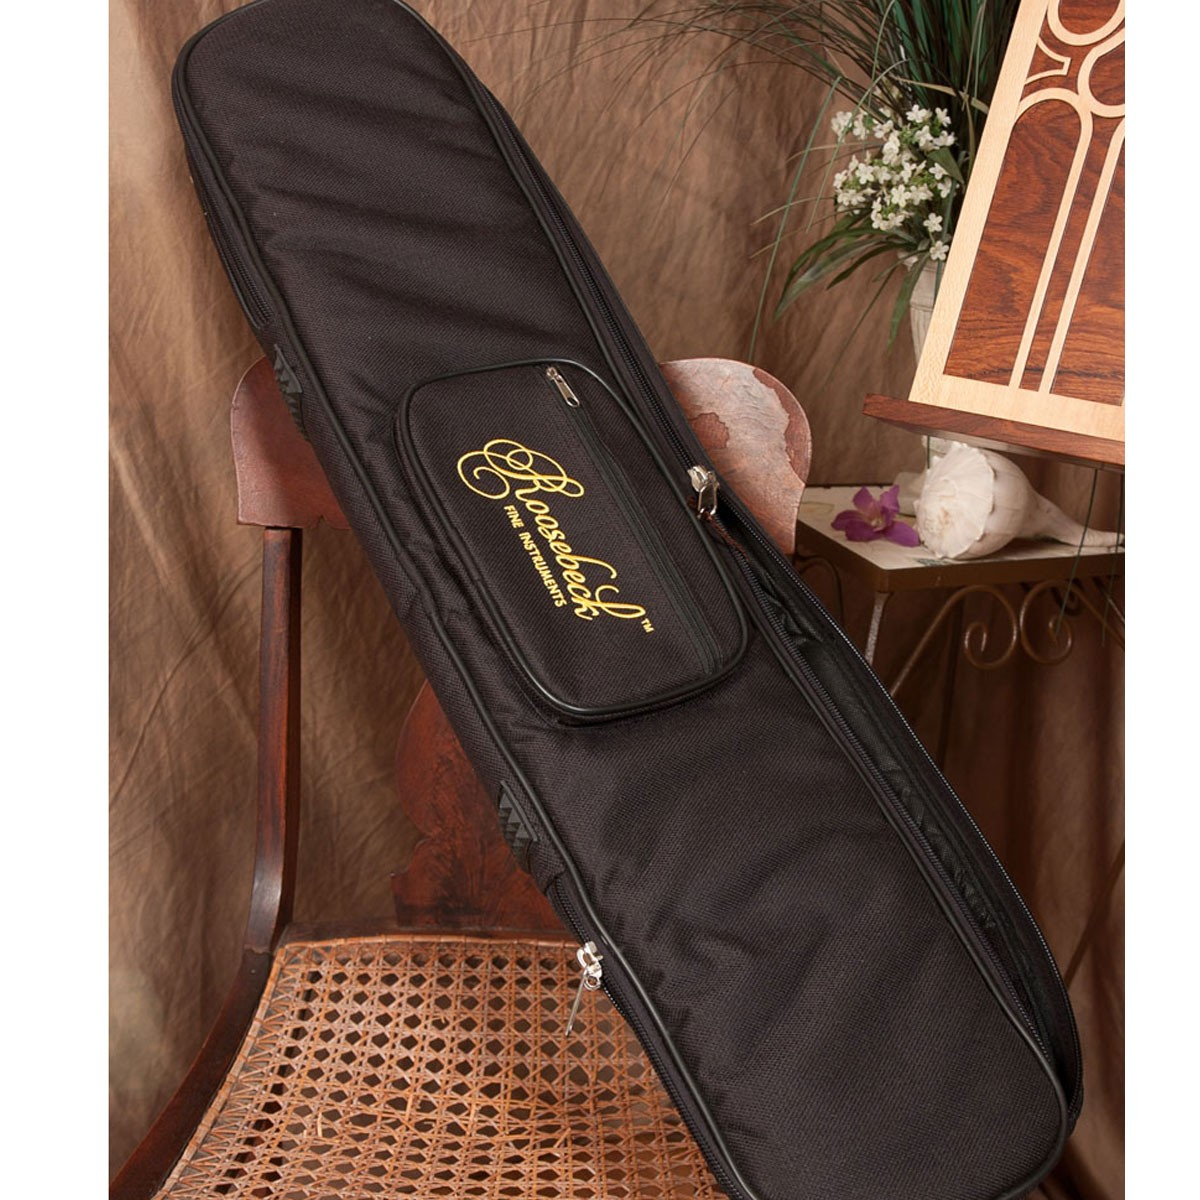 Mountain Dulcimer Accessories